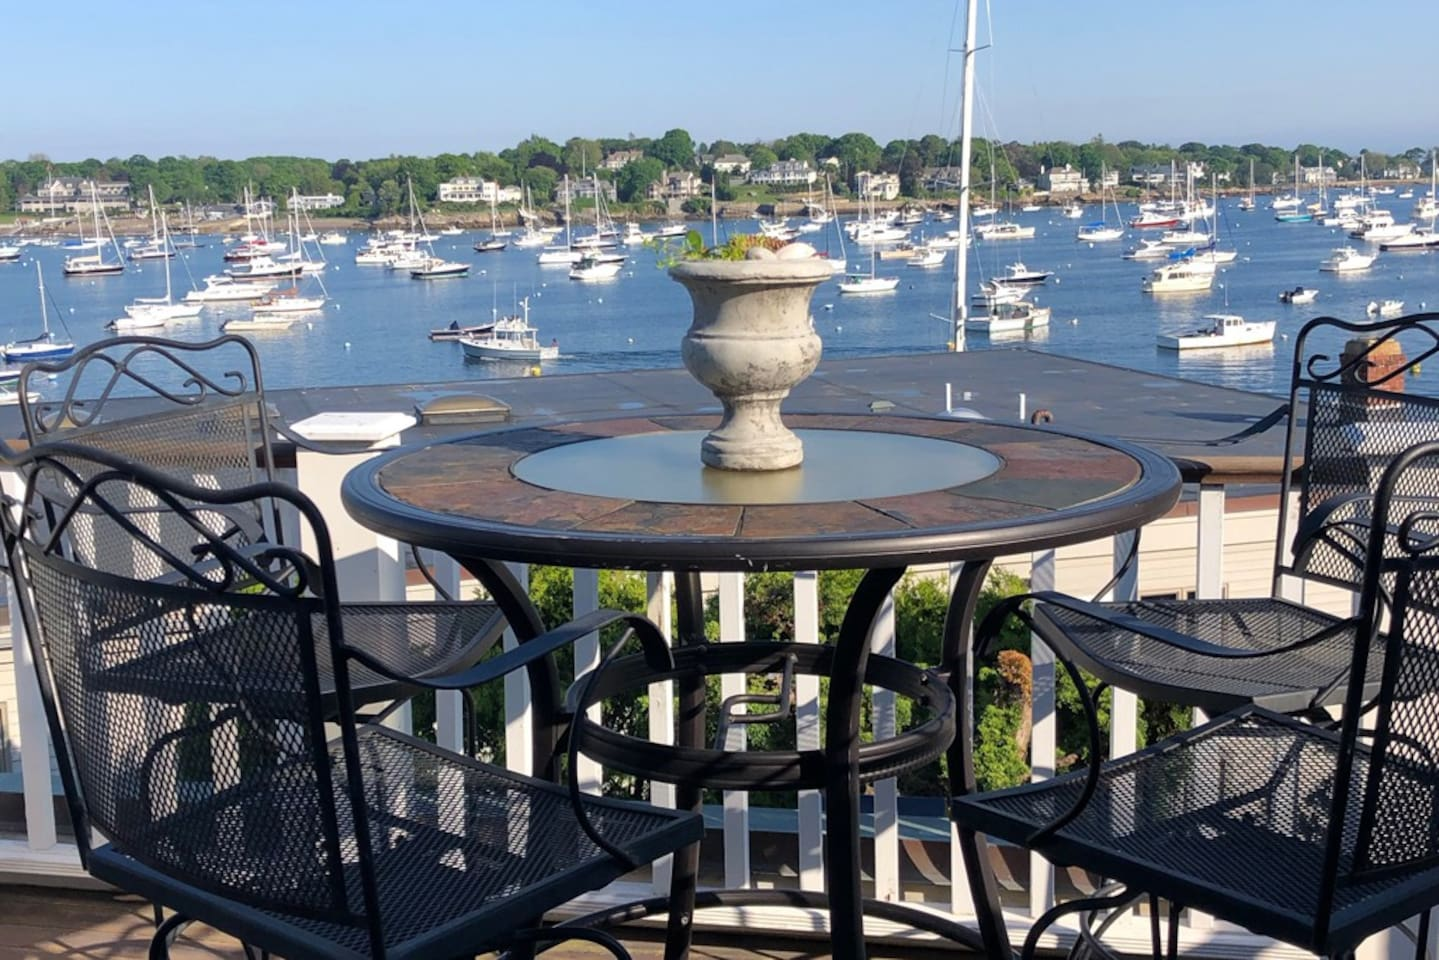 2 story Beautifully Decorated unit with Deluxe views of the harbor from both floors!